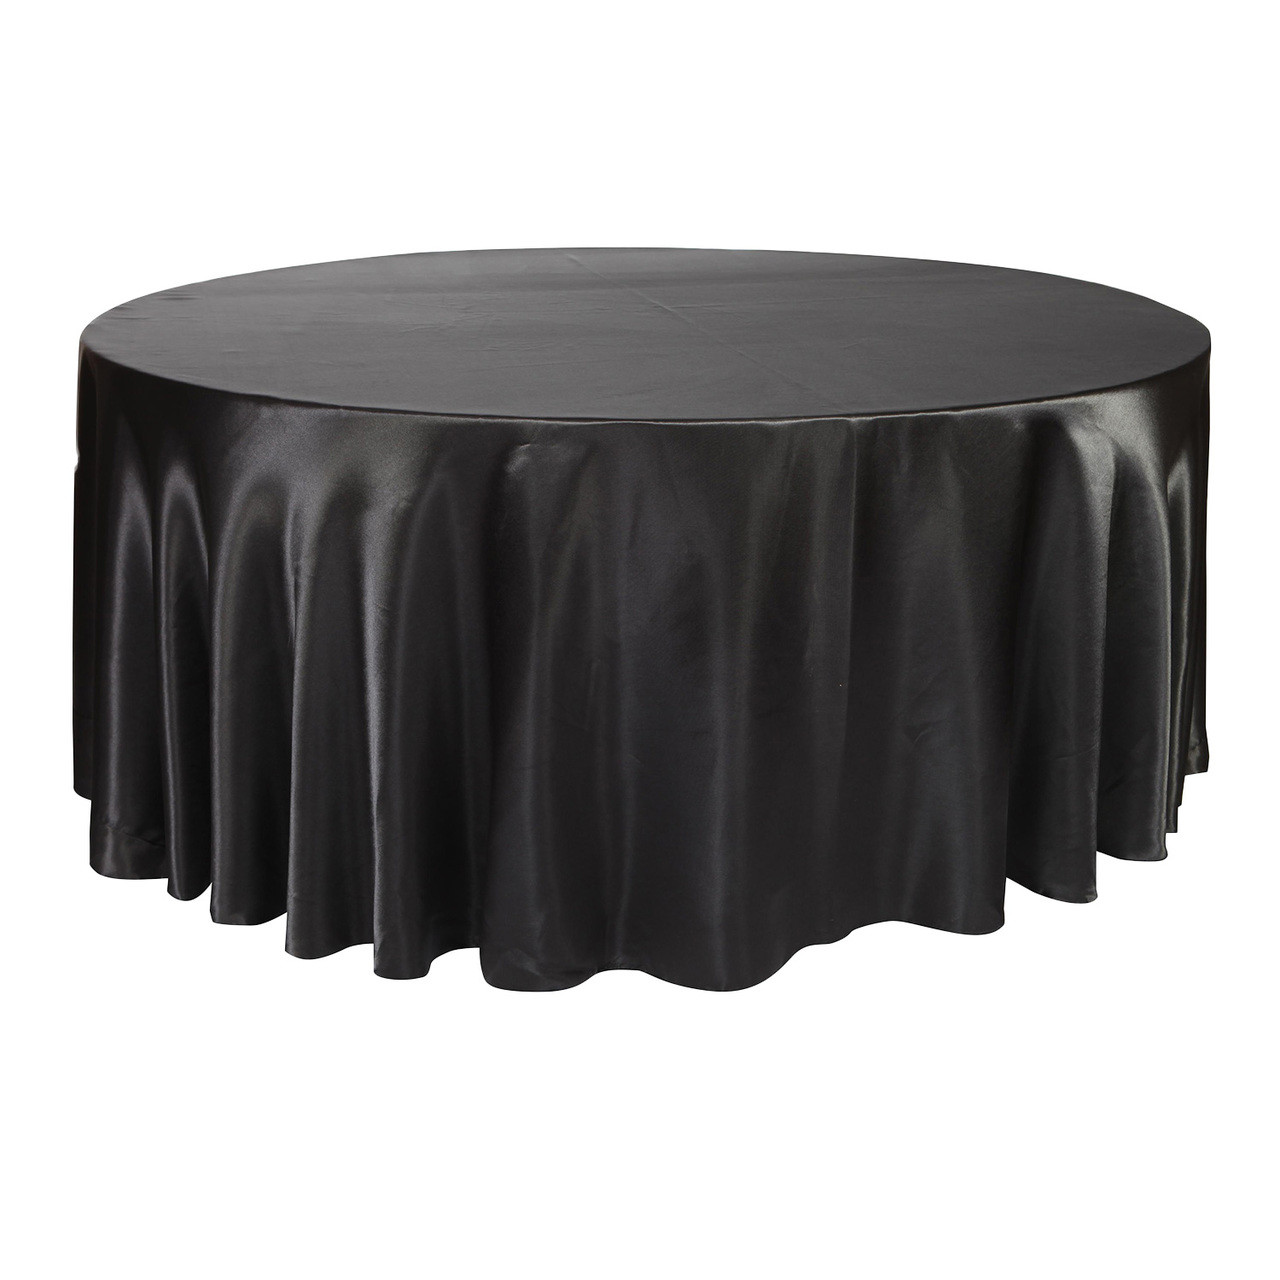 Enjoyable 132 Inch Round Satin Tablecloth Black Beatyapartments Chair Design Images Beatyapartmentscom